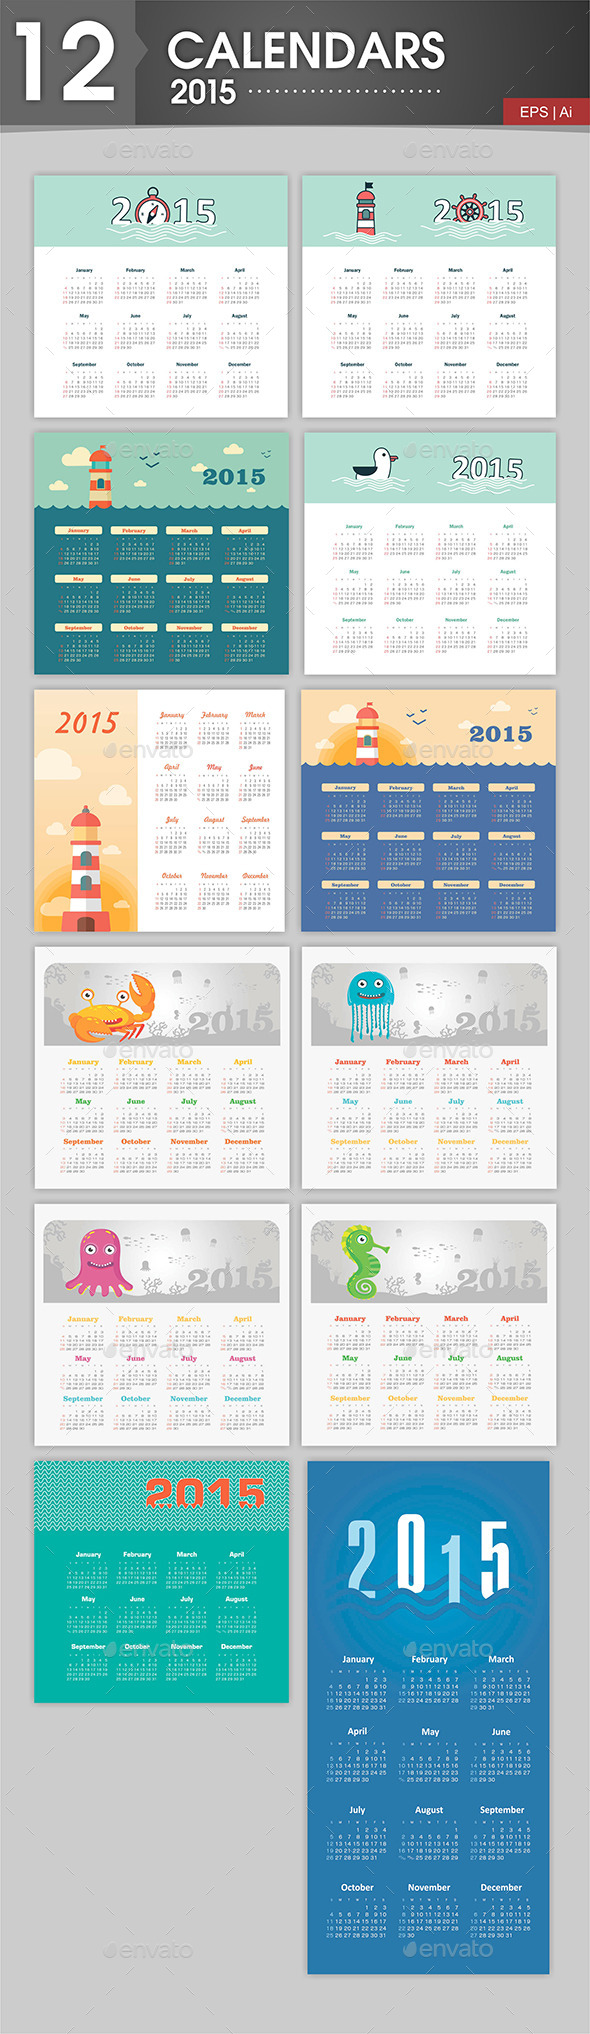 GraphicRiver 12 Calendars 2015 Marine Theme 9516005